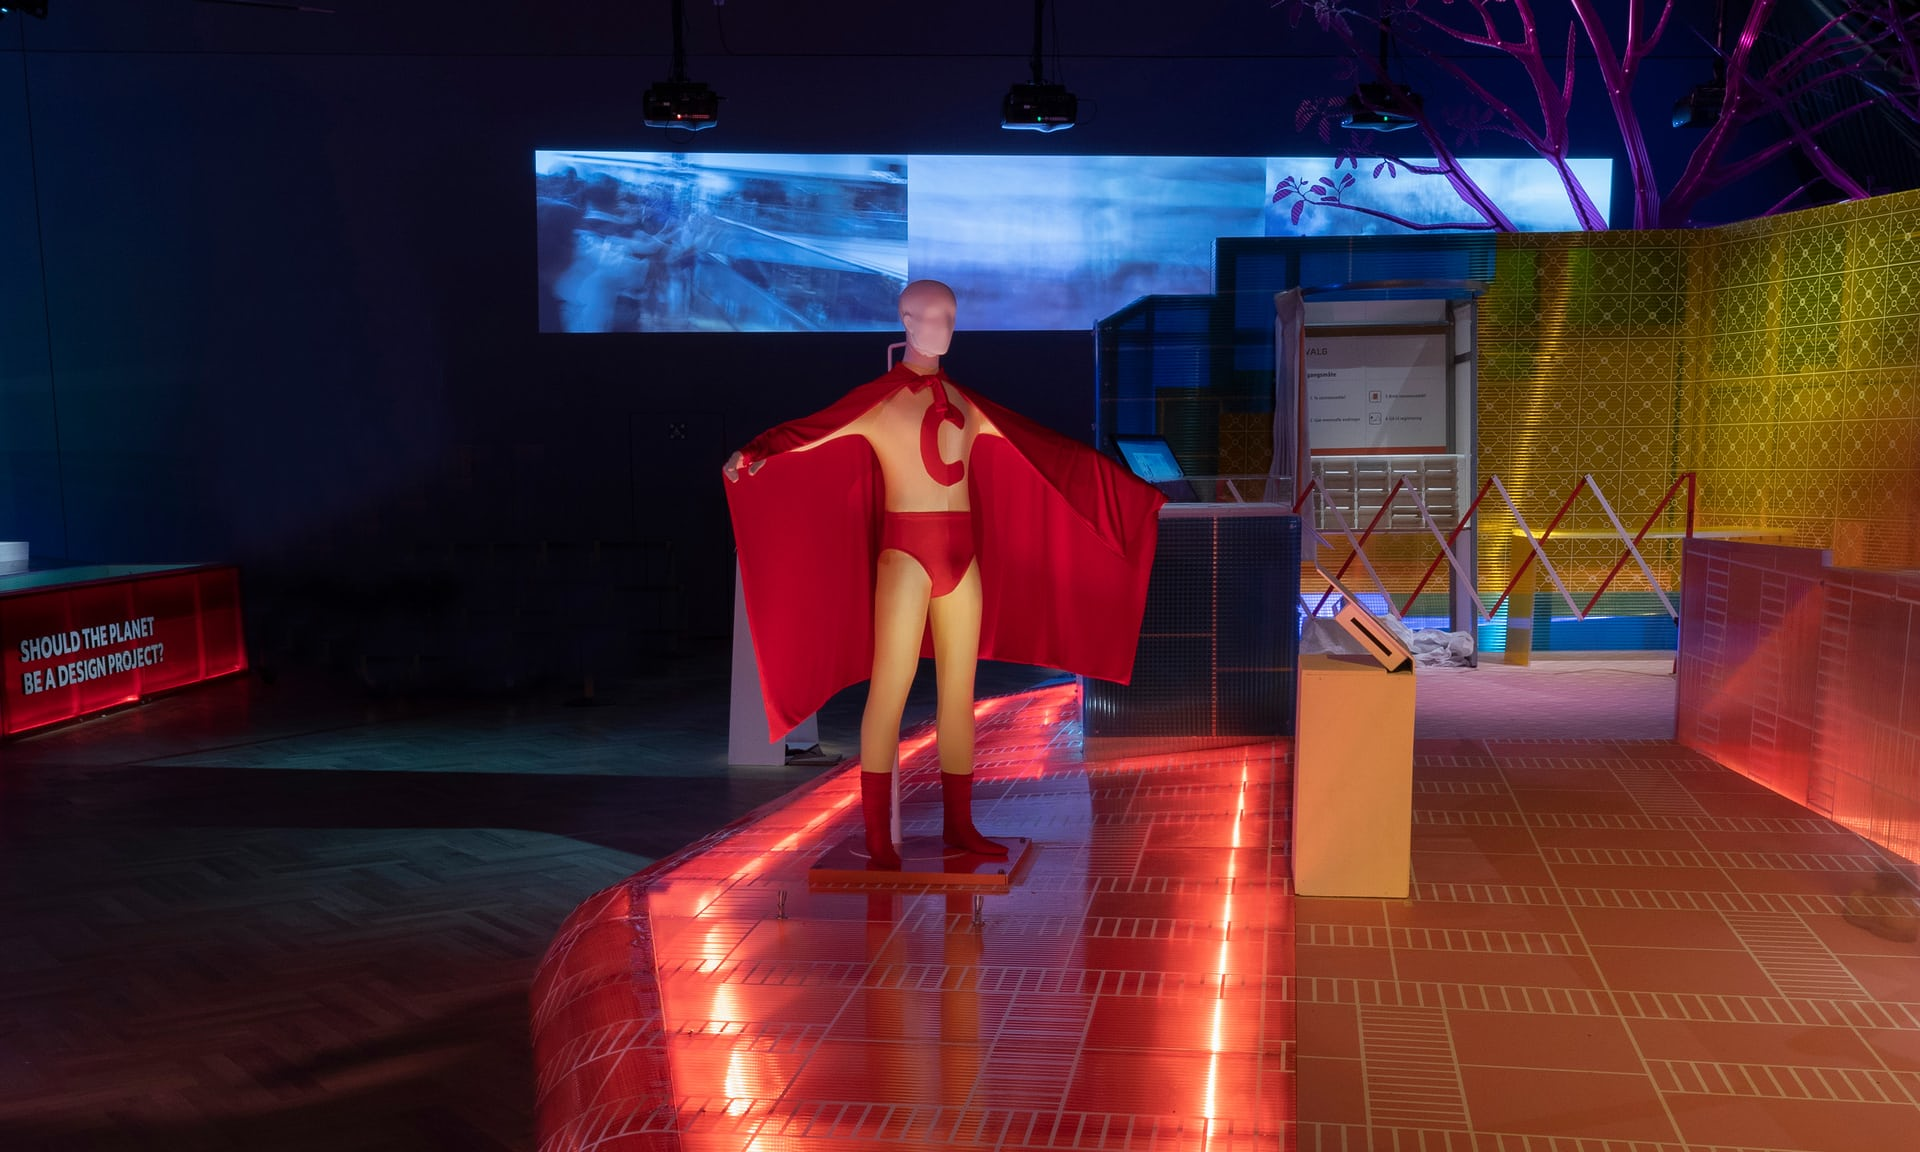 The Marvel-style 'super citizen' outfit worn by former mayor of Bogotá, Antanas Mockus. Photograph: Victoria and Albert Museum London